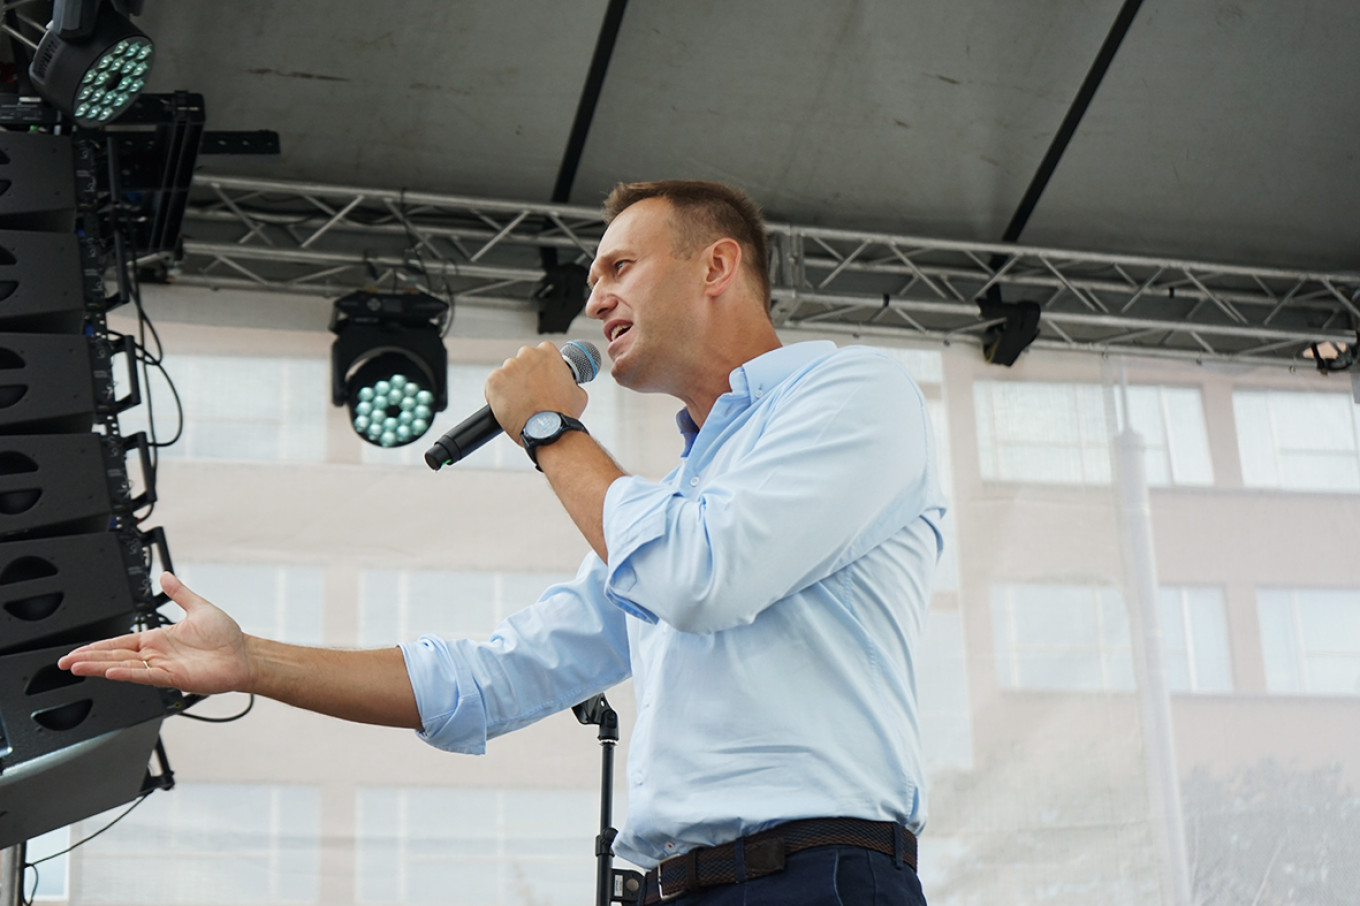 Opposition leader Alexei Navalny called for the demonstrations to continue next weekend. Héloïse Bargain / MT